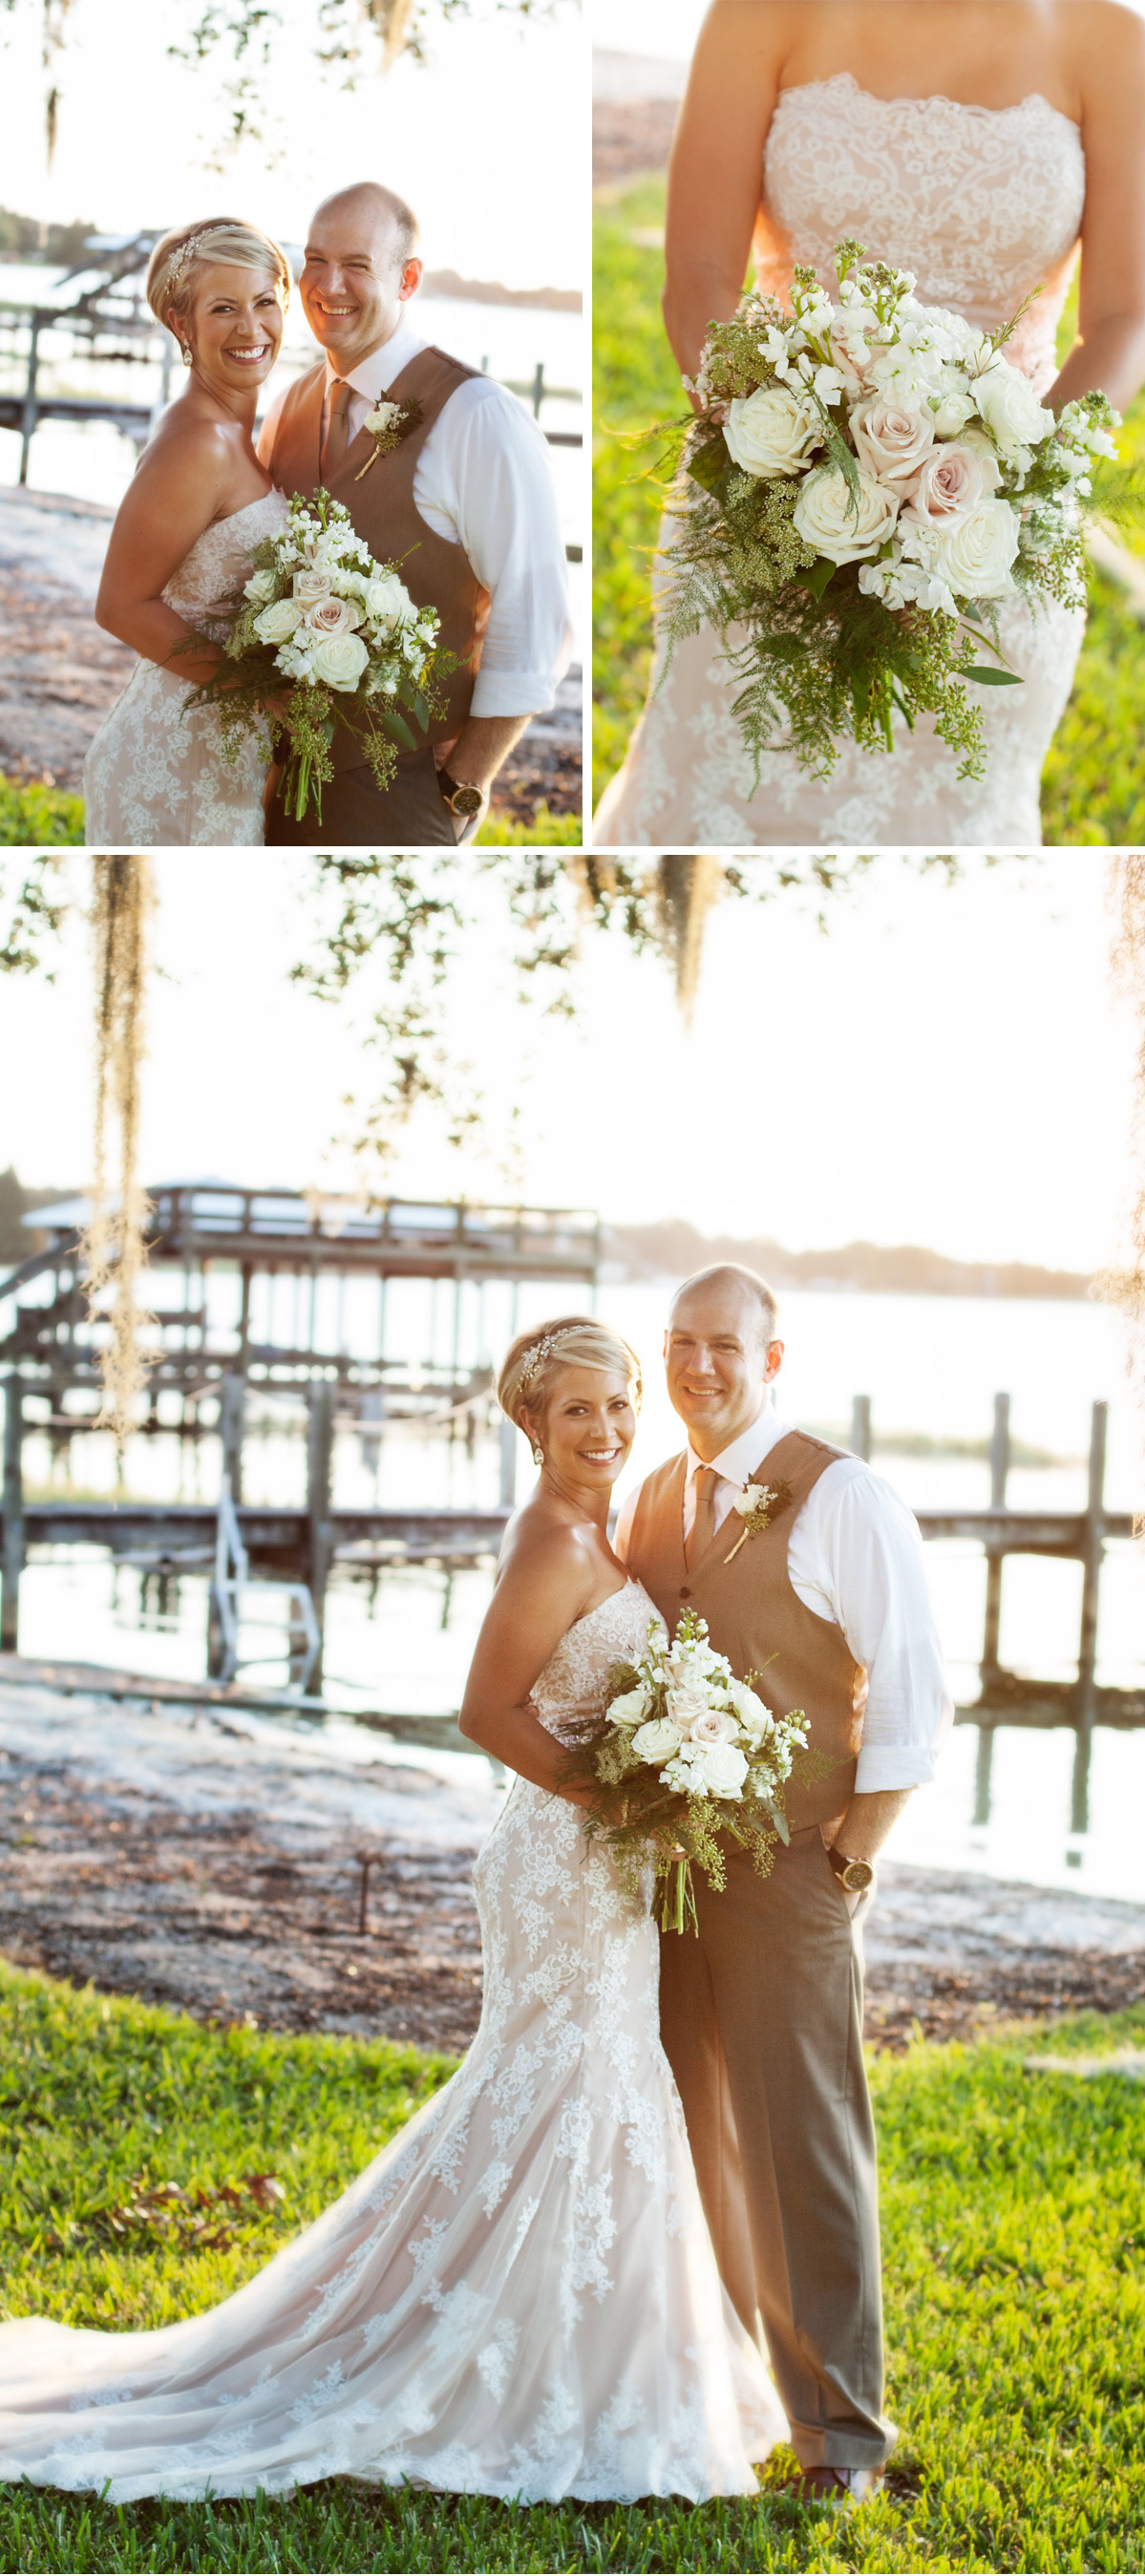 Intimate lakefront wedding inspiration photos